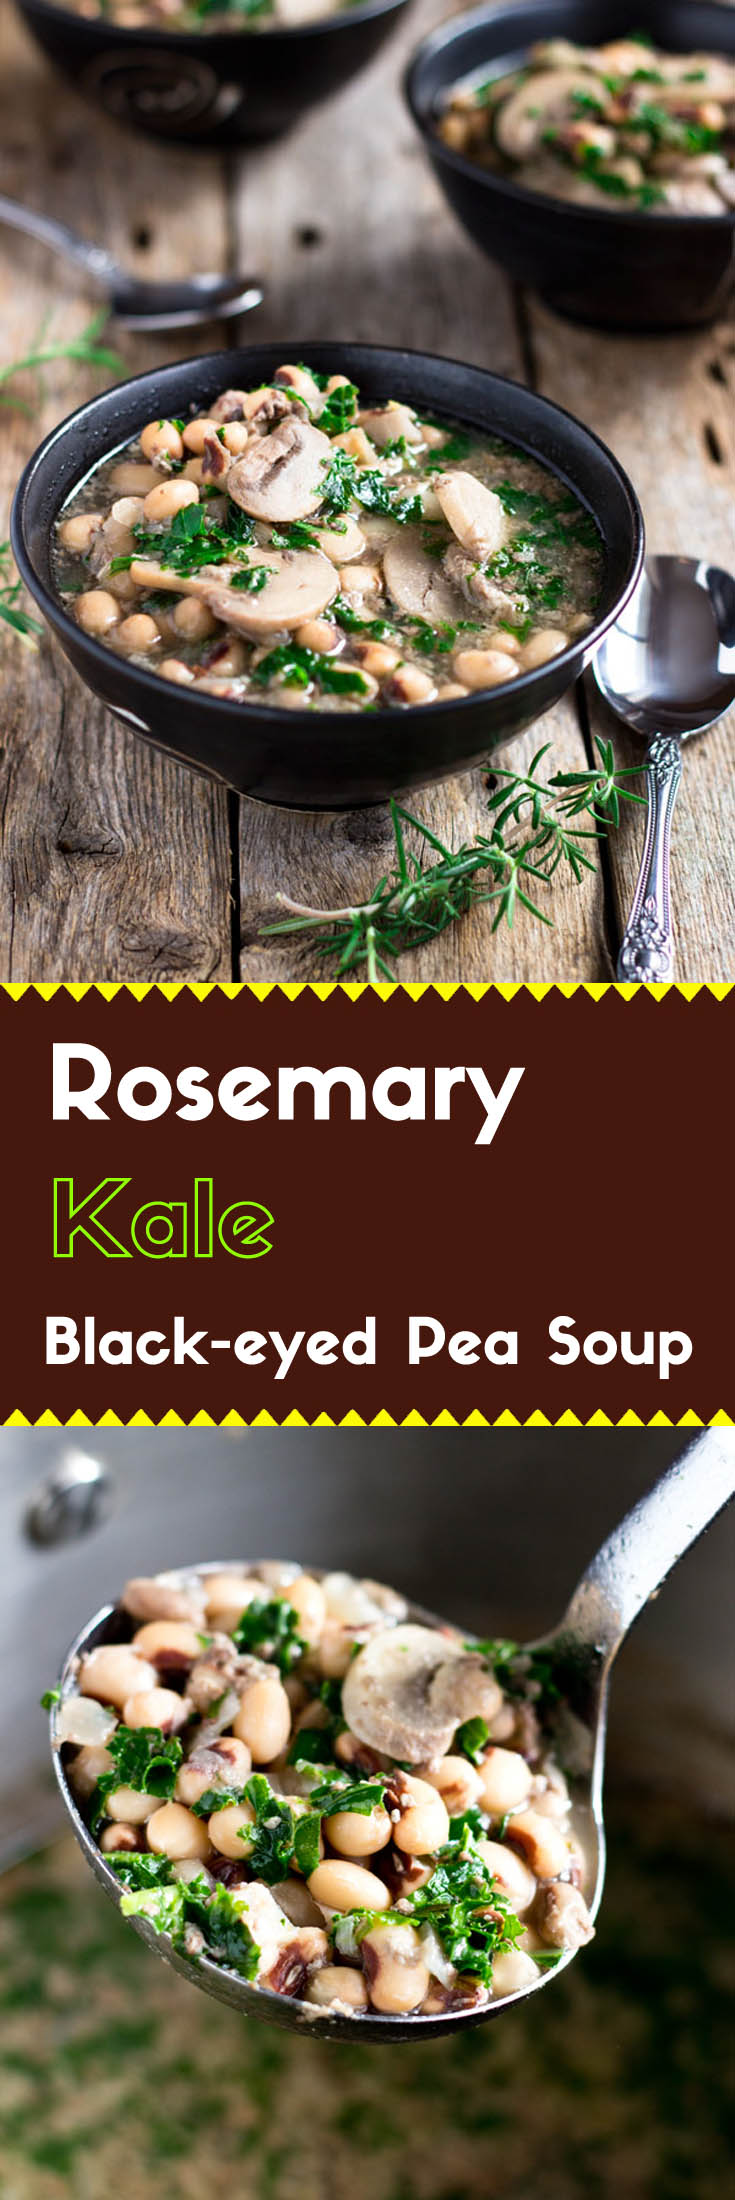 Rosemary Black-Eyed Pea Soup with Kale